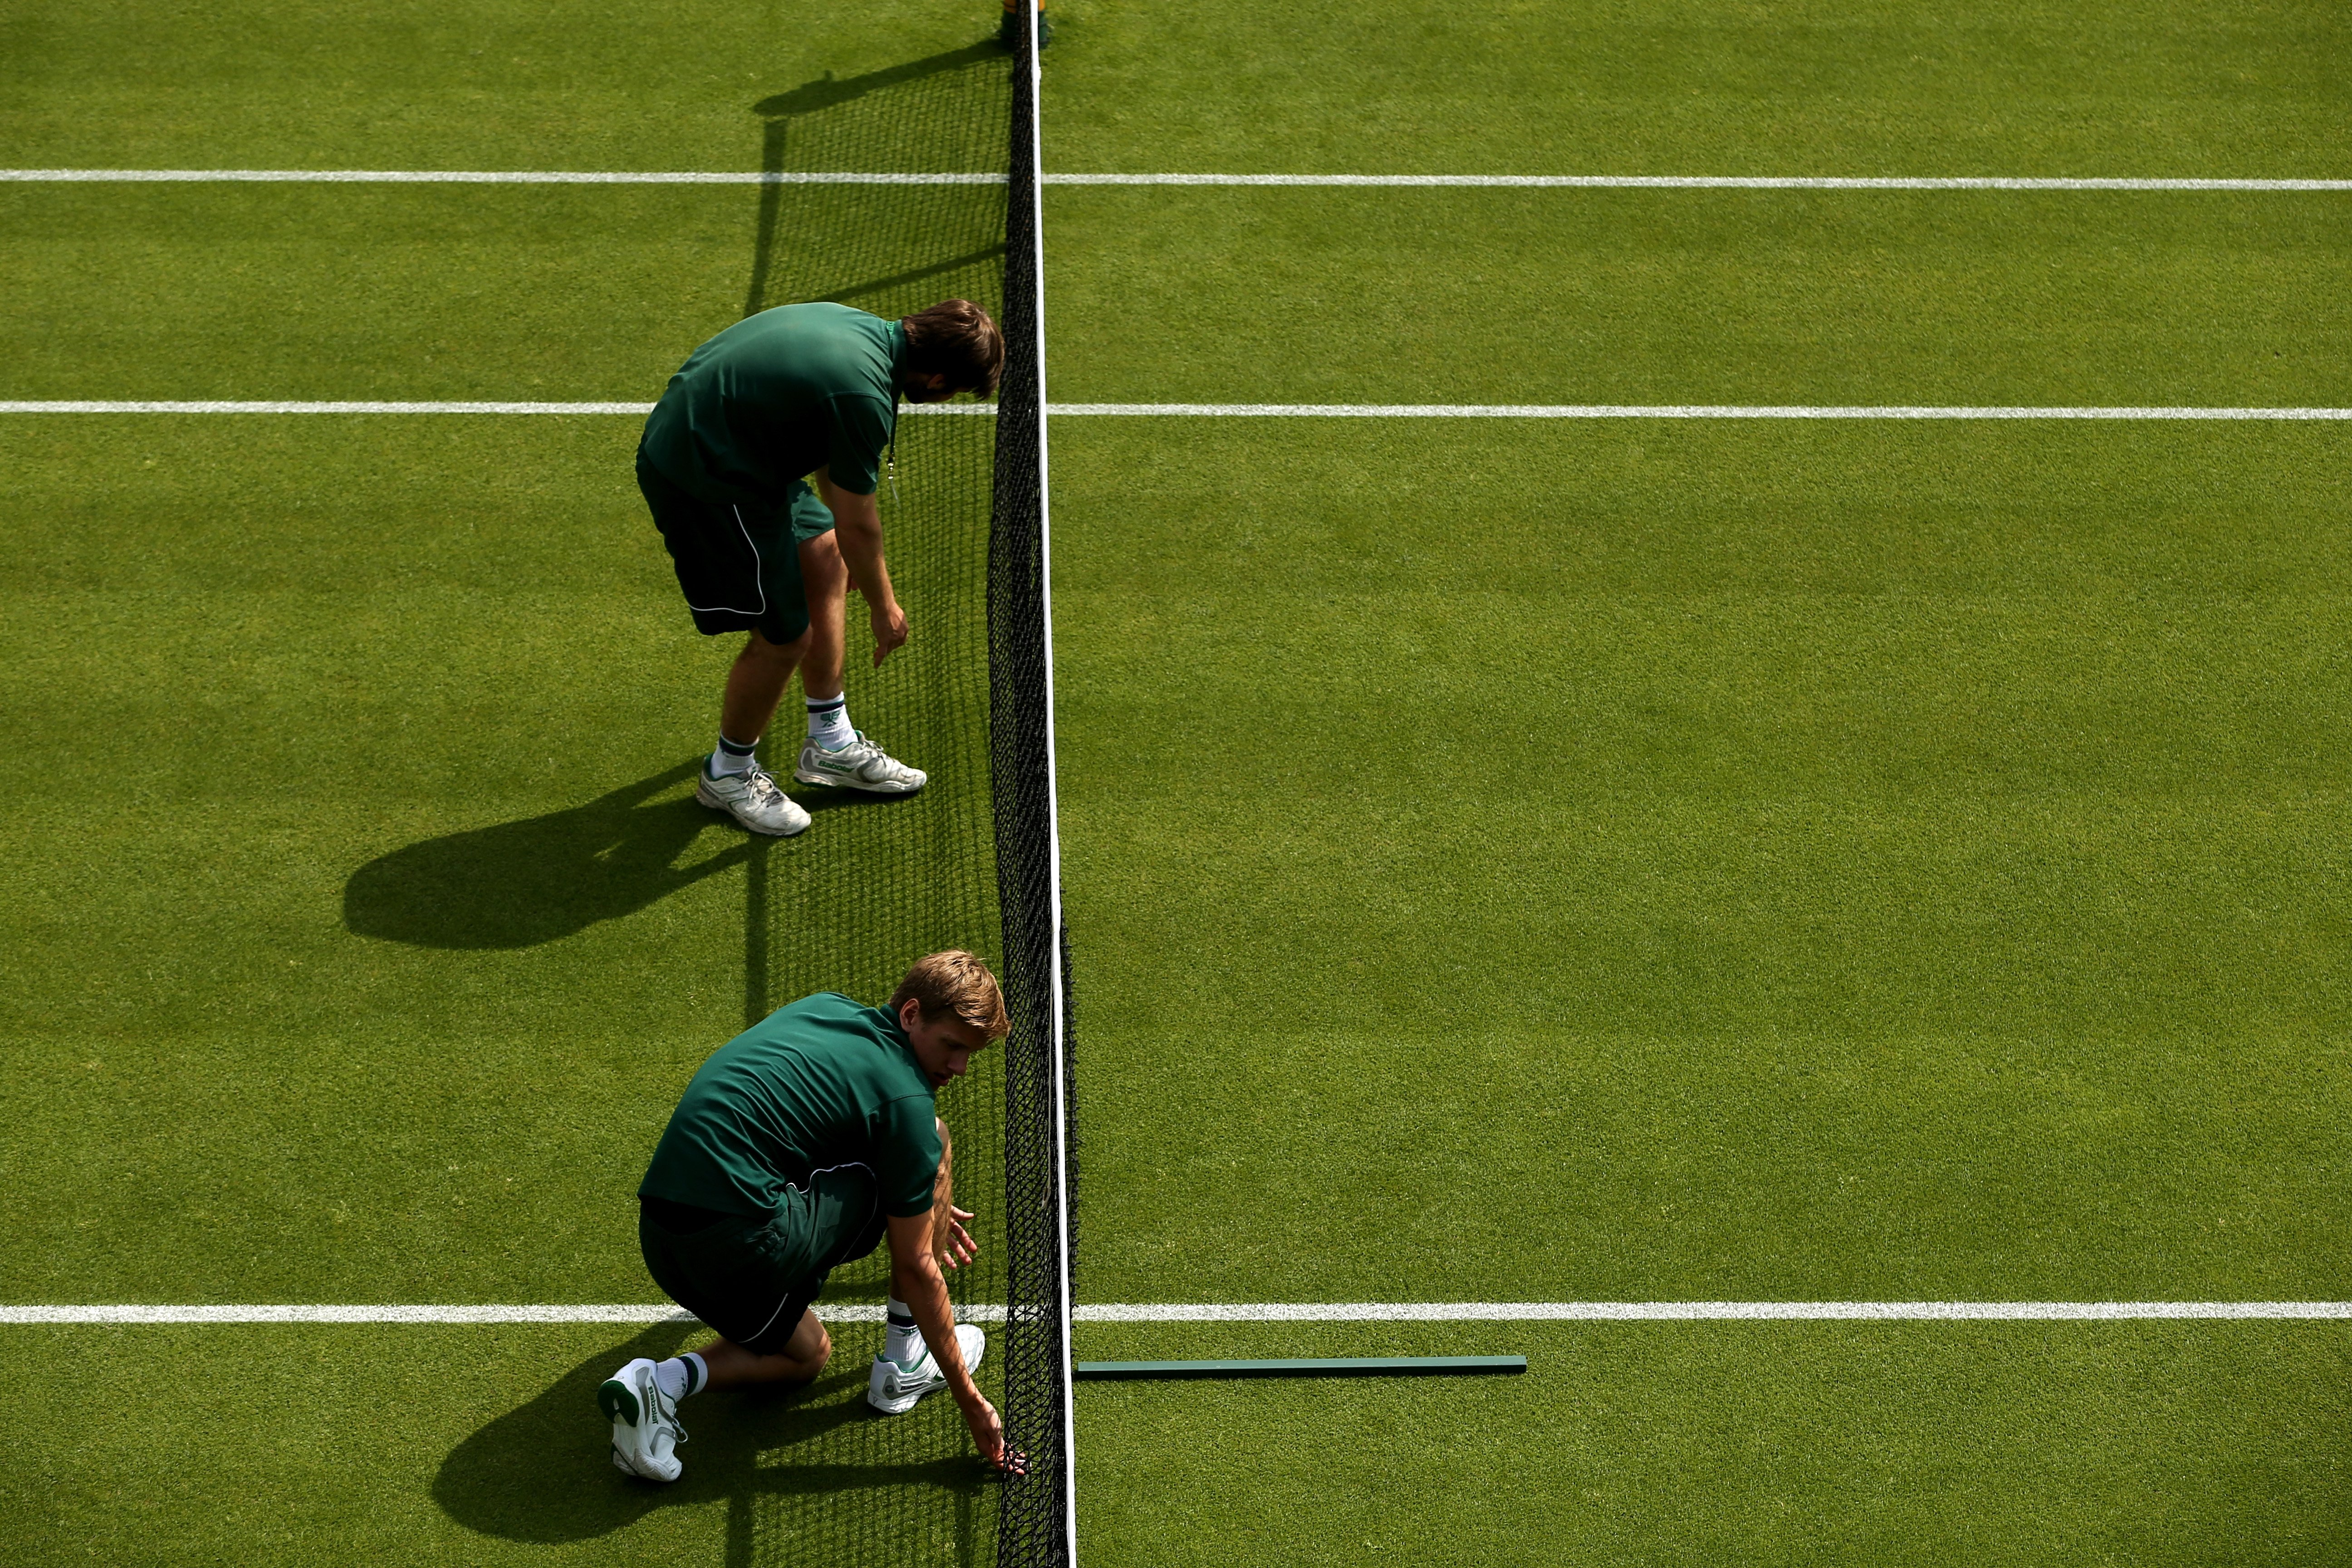 Groundstaff prepare the courts on day one of the Wimbledon Tennis Championships, in London on June 23, 2014.